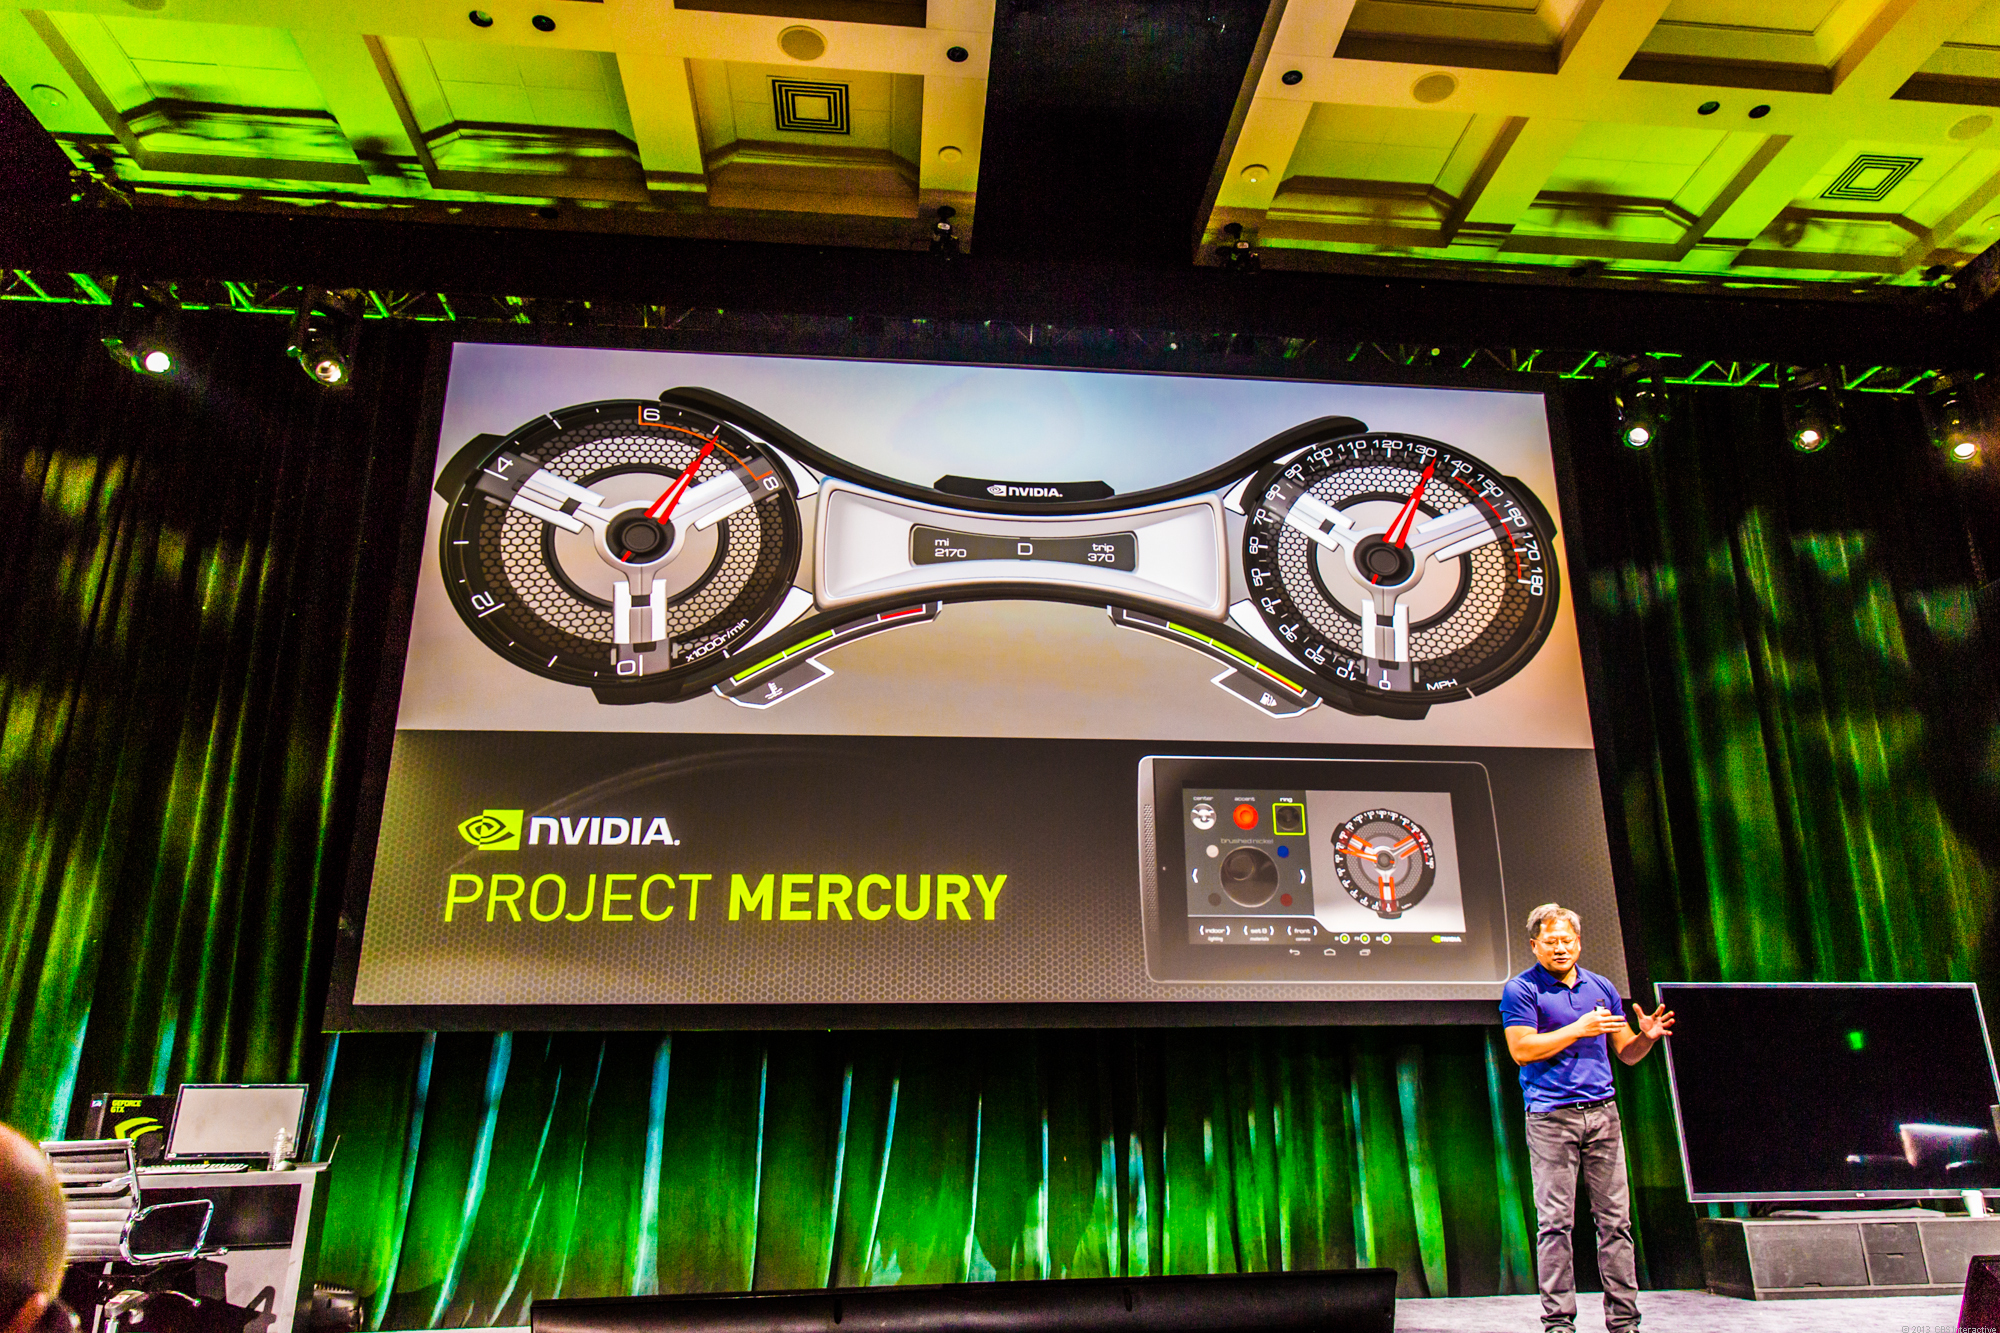 Nvidia's Project Mercury